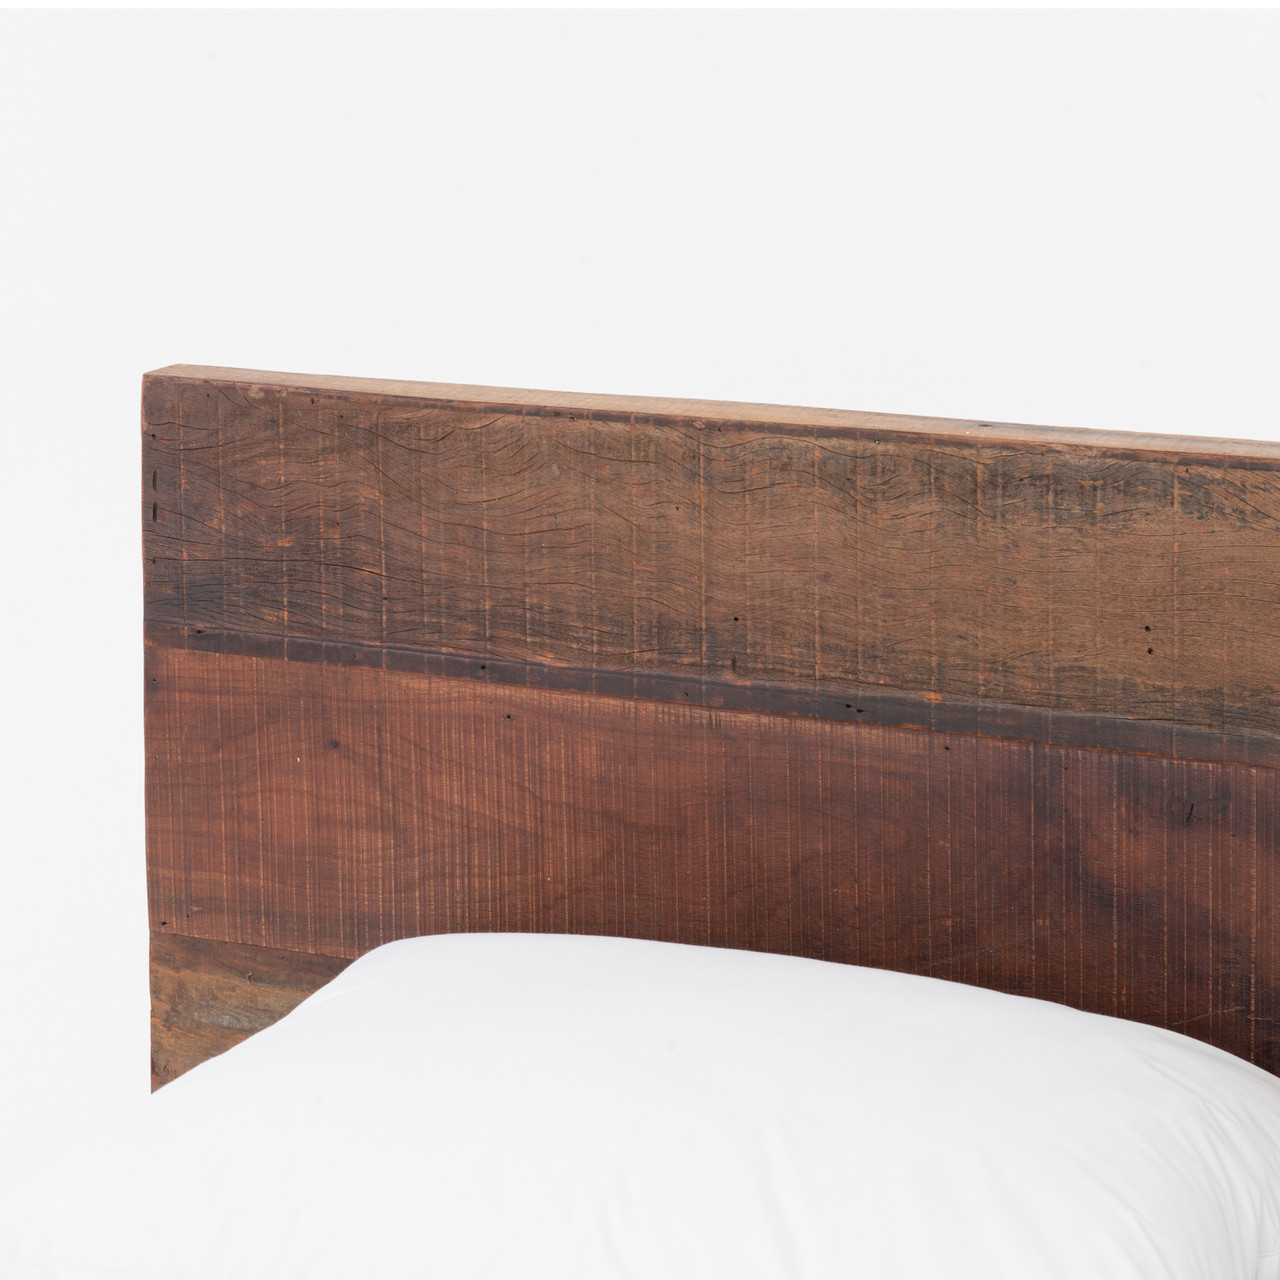 ... Bonnie Reclaimed Wood King Platform Bed with headboard ... - Bonnie Rustic Reclaimed Wood King Platform Bed Frame Zin Home